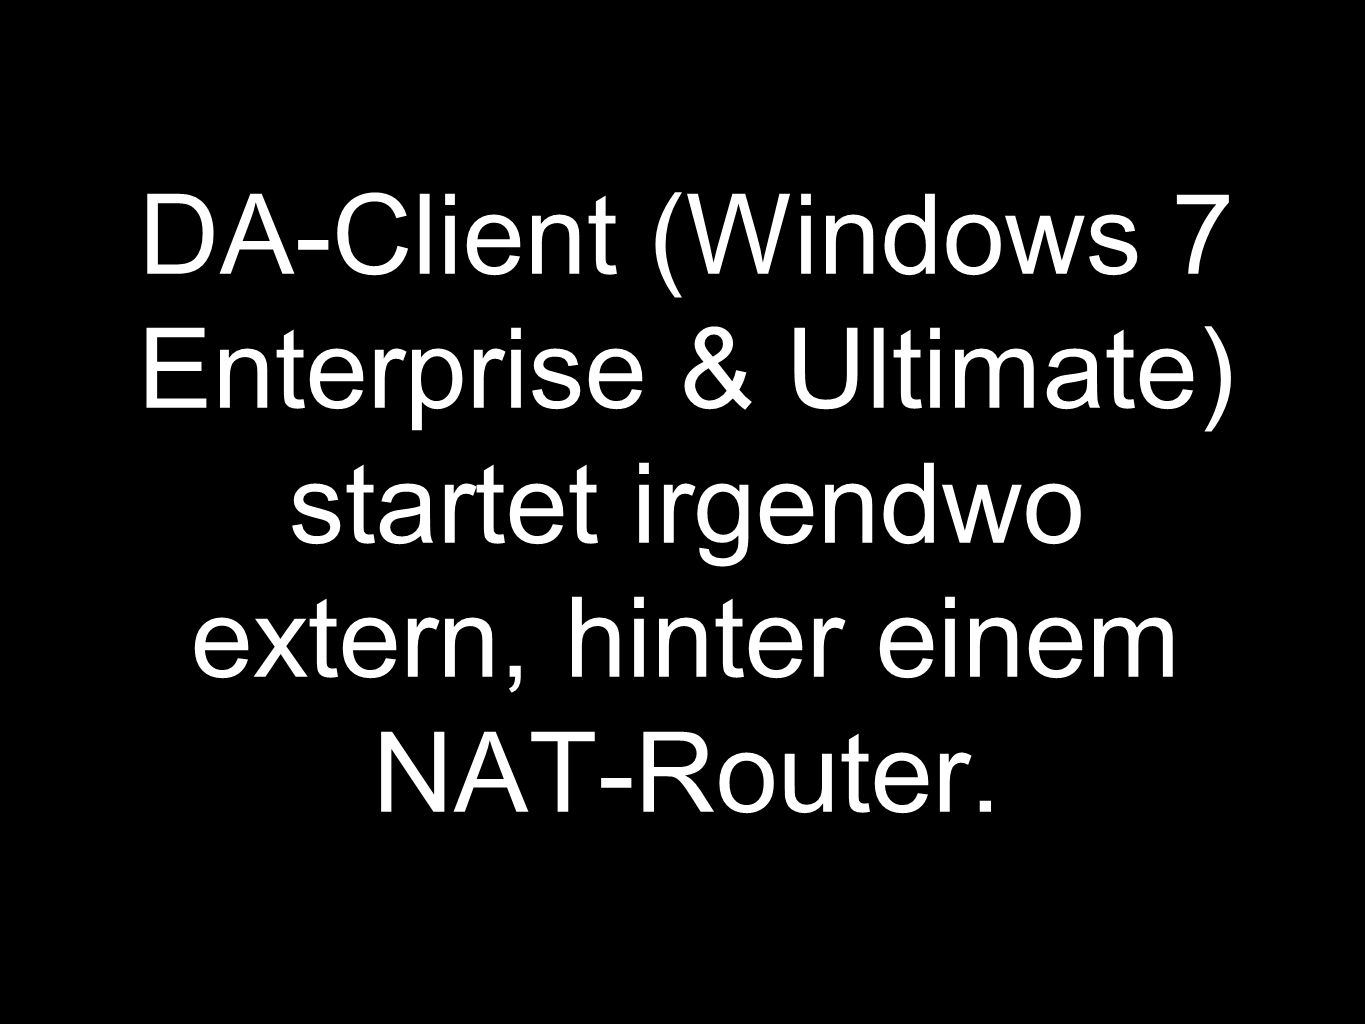 DA-Client (Windows 7 Enterprise & Ultimate) startet irgendwo extern, hinter einem NAT-Router.